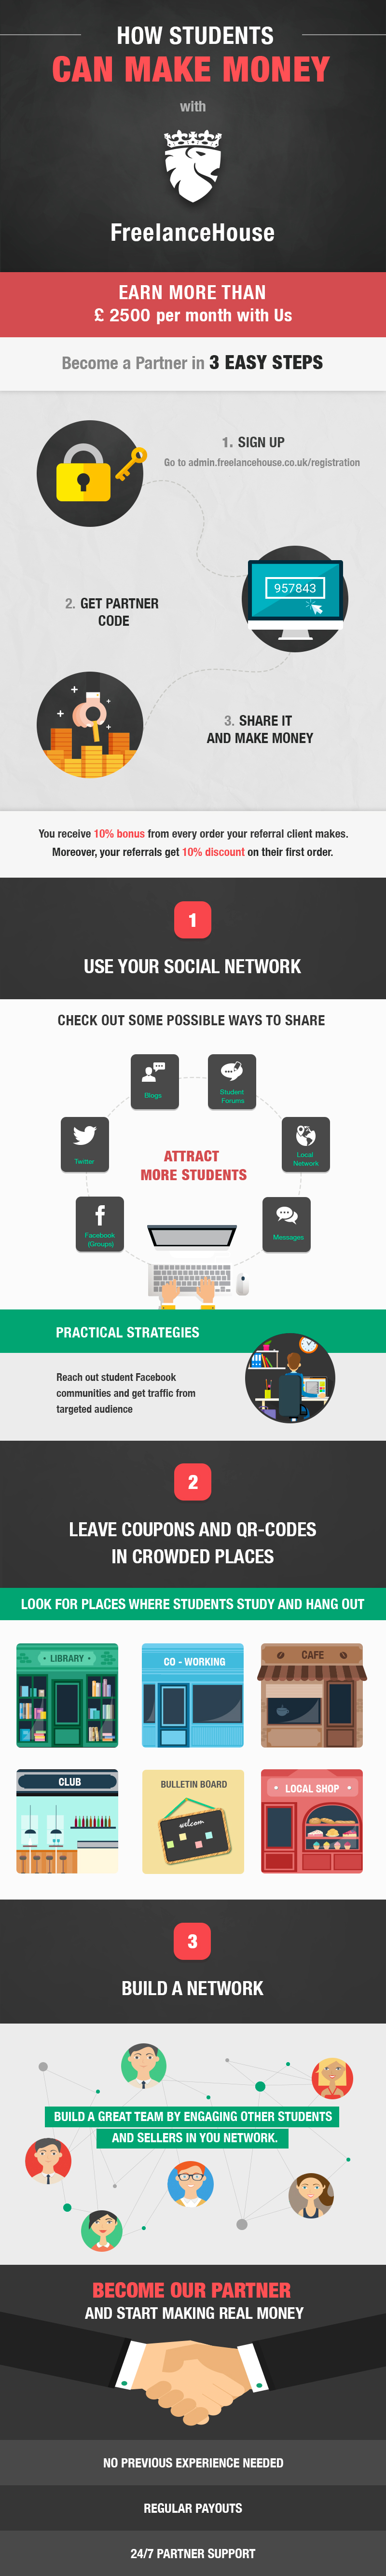 Infographics: Make Money With FreelanceHouse